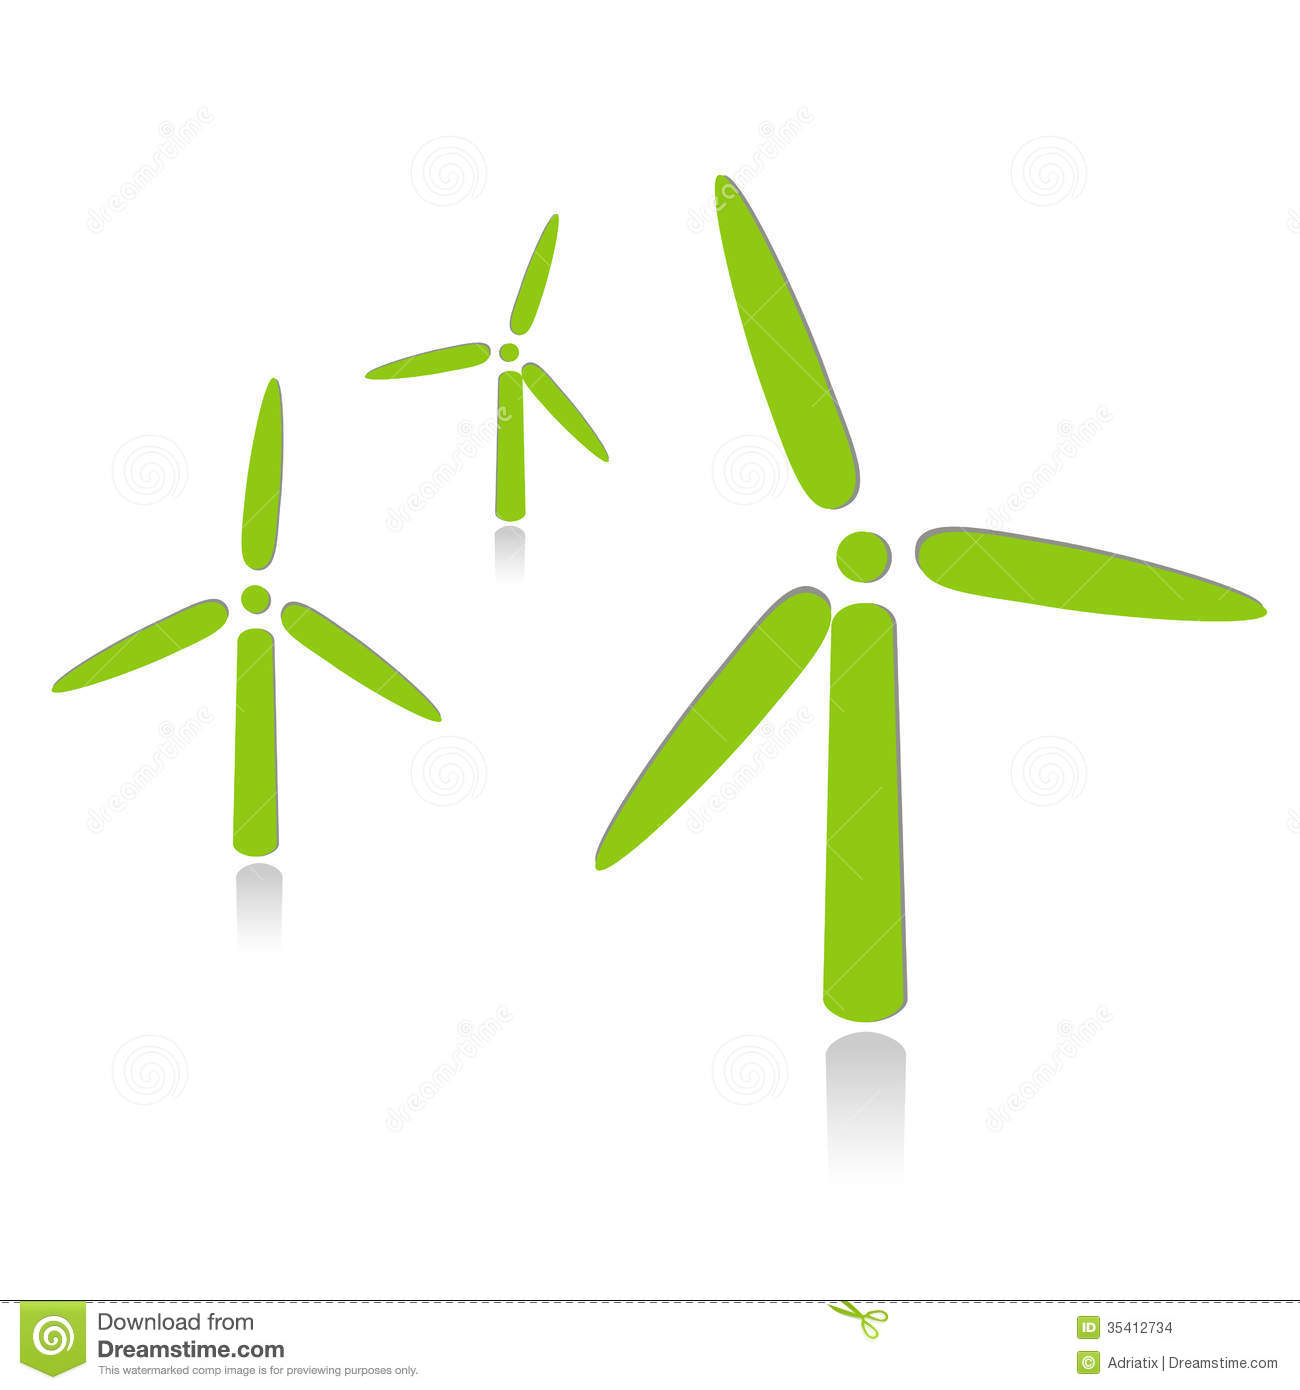 Illustration of wind turbine on a white background.